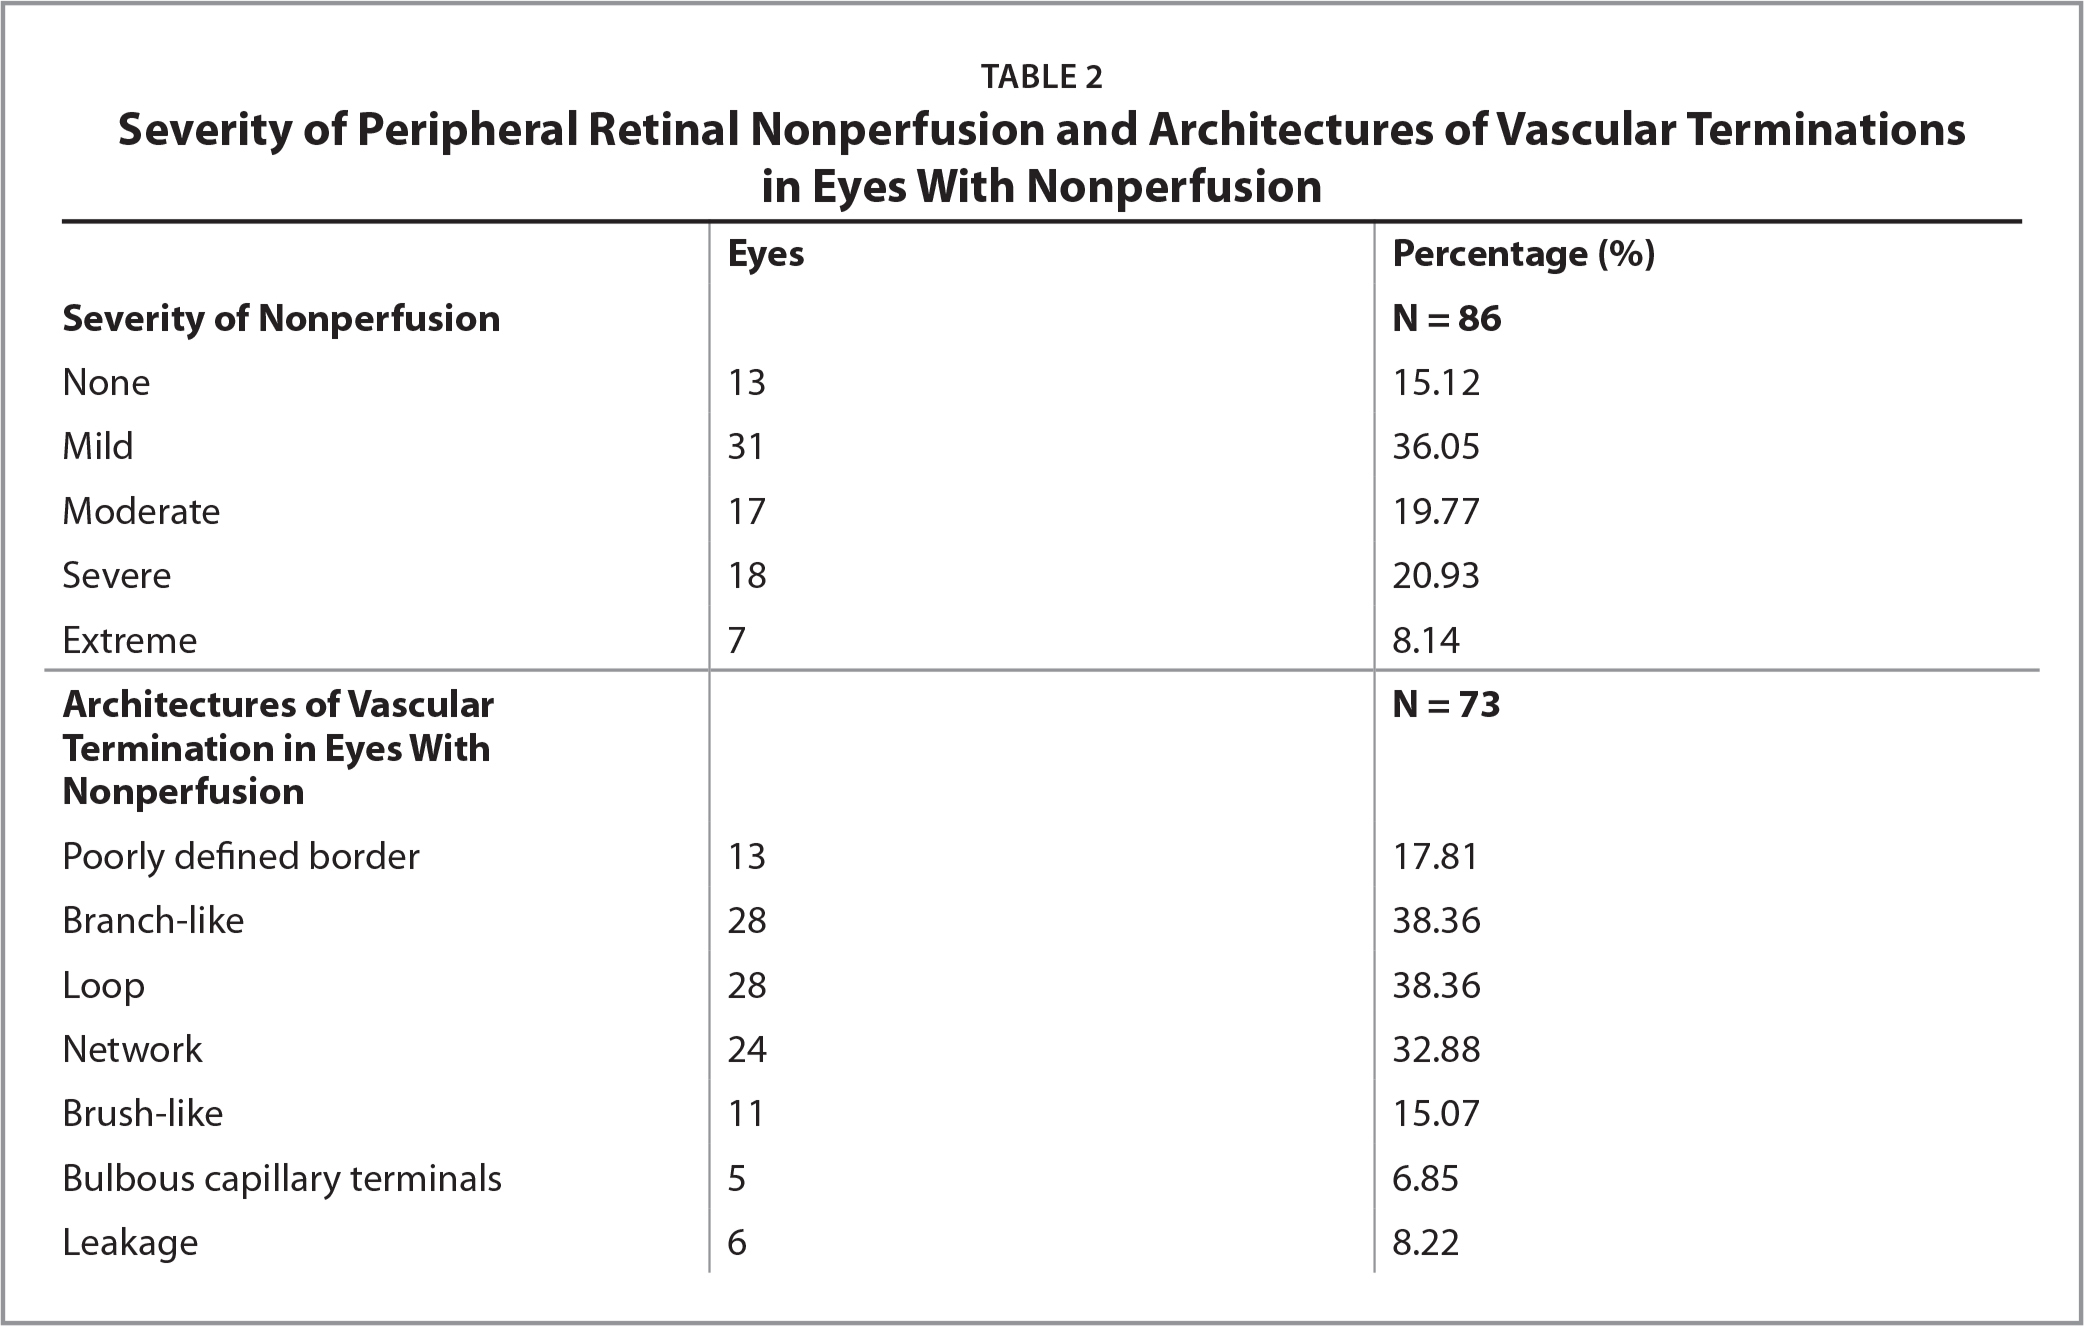 Severity of Peripheral Retinal Nonperfusion and Architectures of Vascular Terminations in Eyes With Nonperfusion